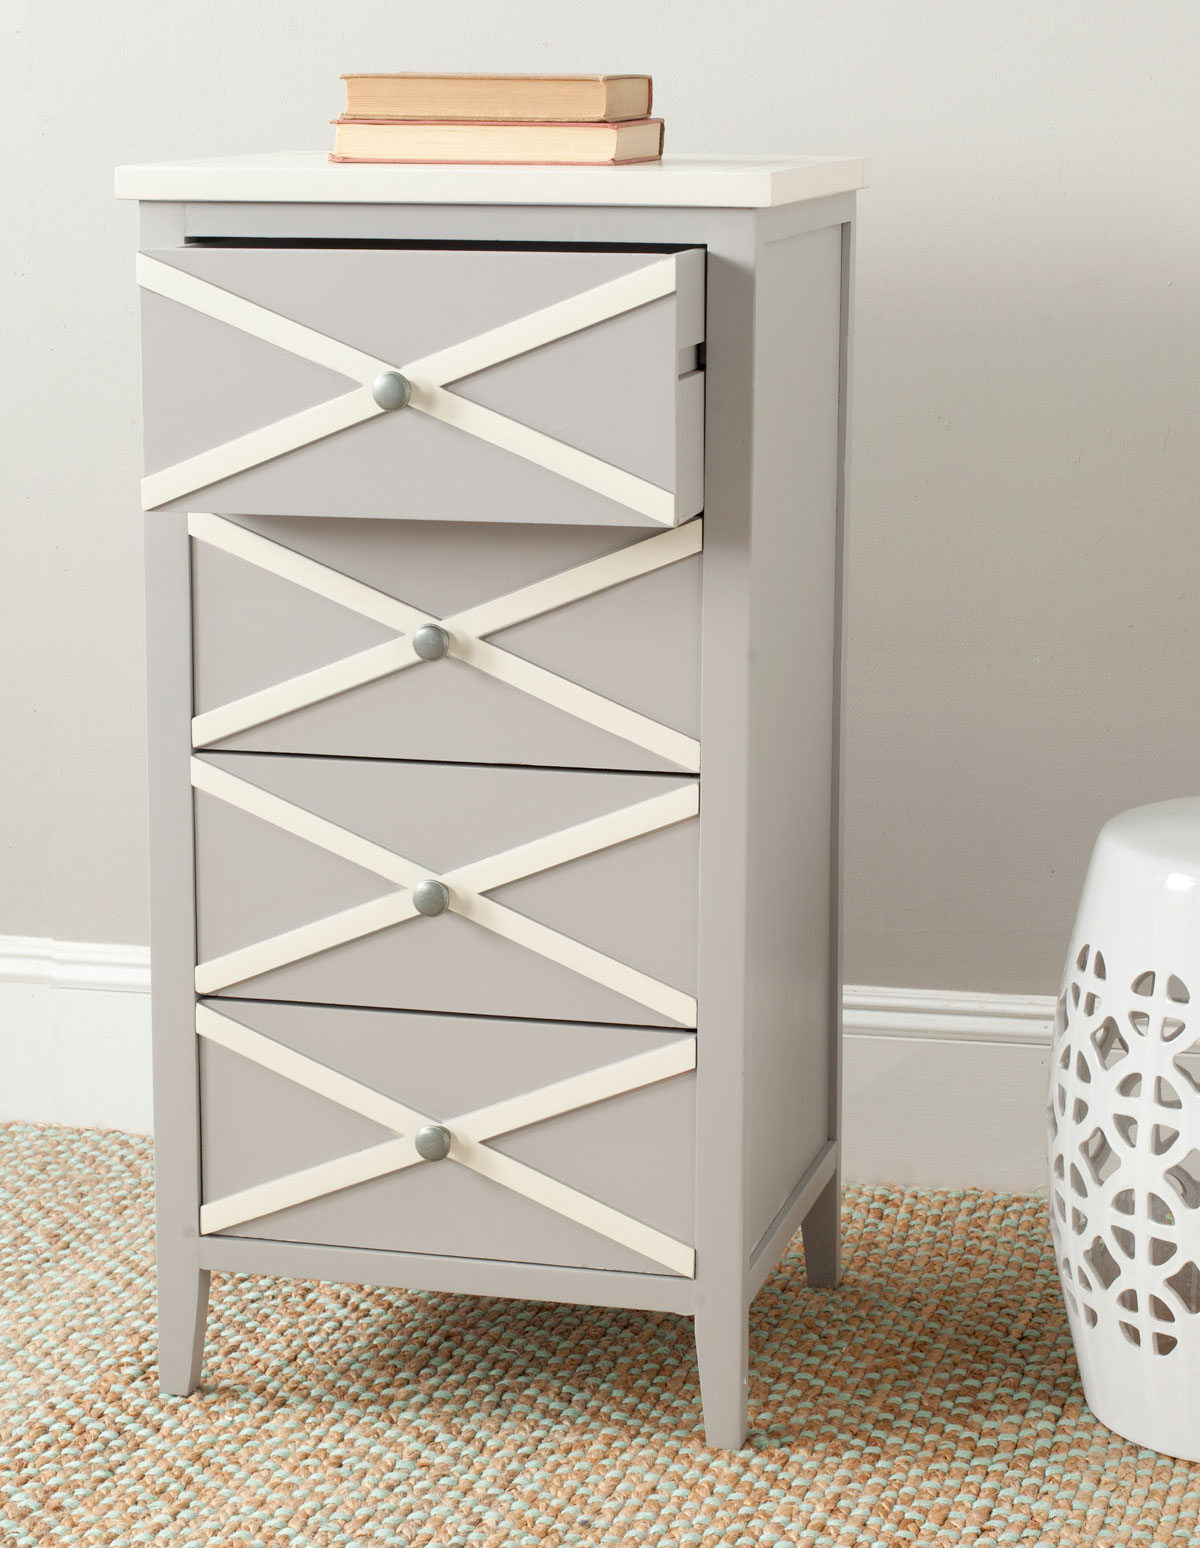 The French Charms Of The Sherrilyn 4 Drawer Accent Table Get Updated In A  Contemporary Color Palette, Shown Here In Grey Finished Poplar With A  Contrasting ...